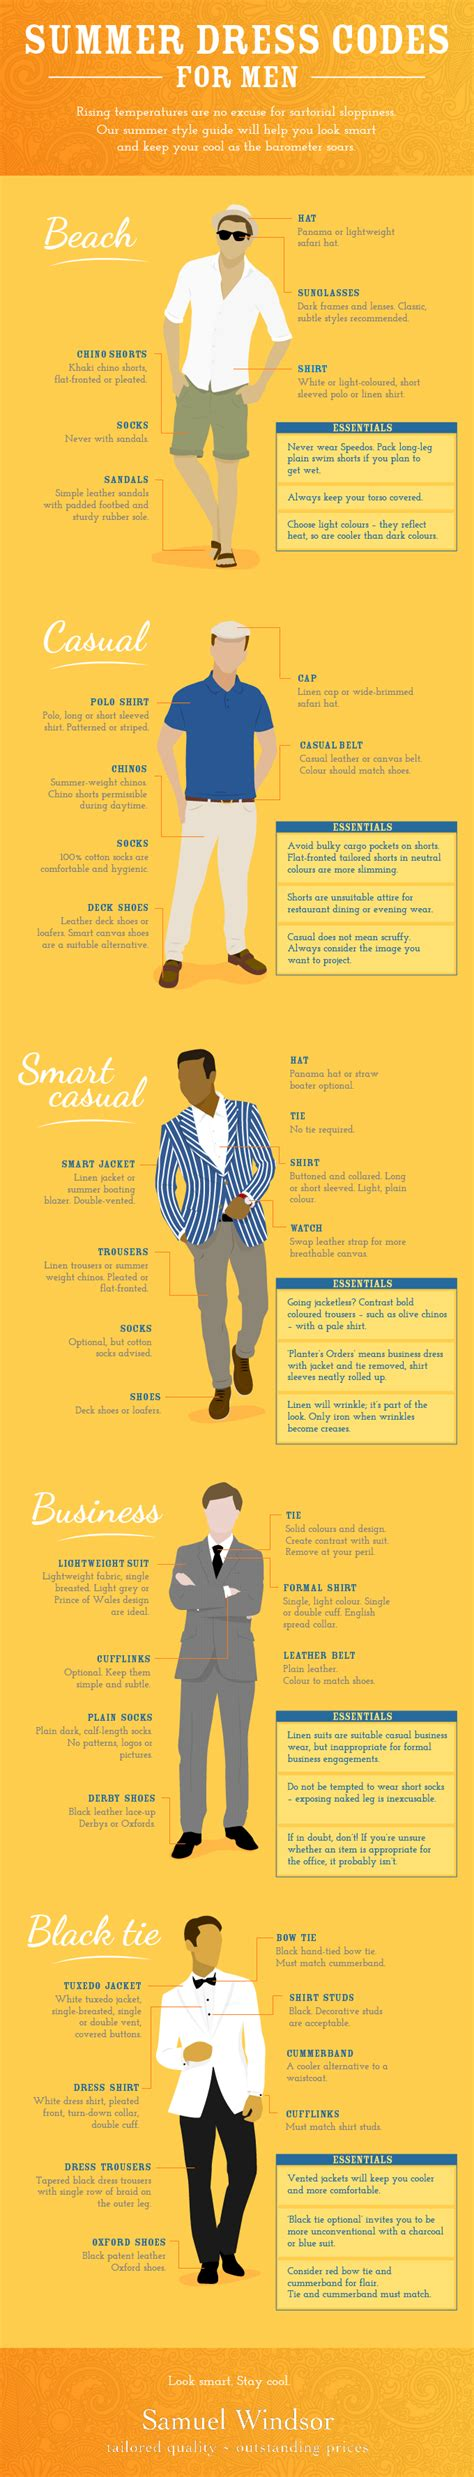 summer dress codes decoded in an infographic